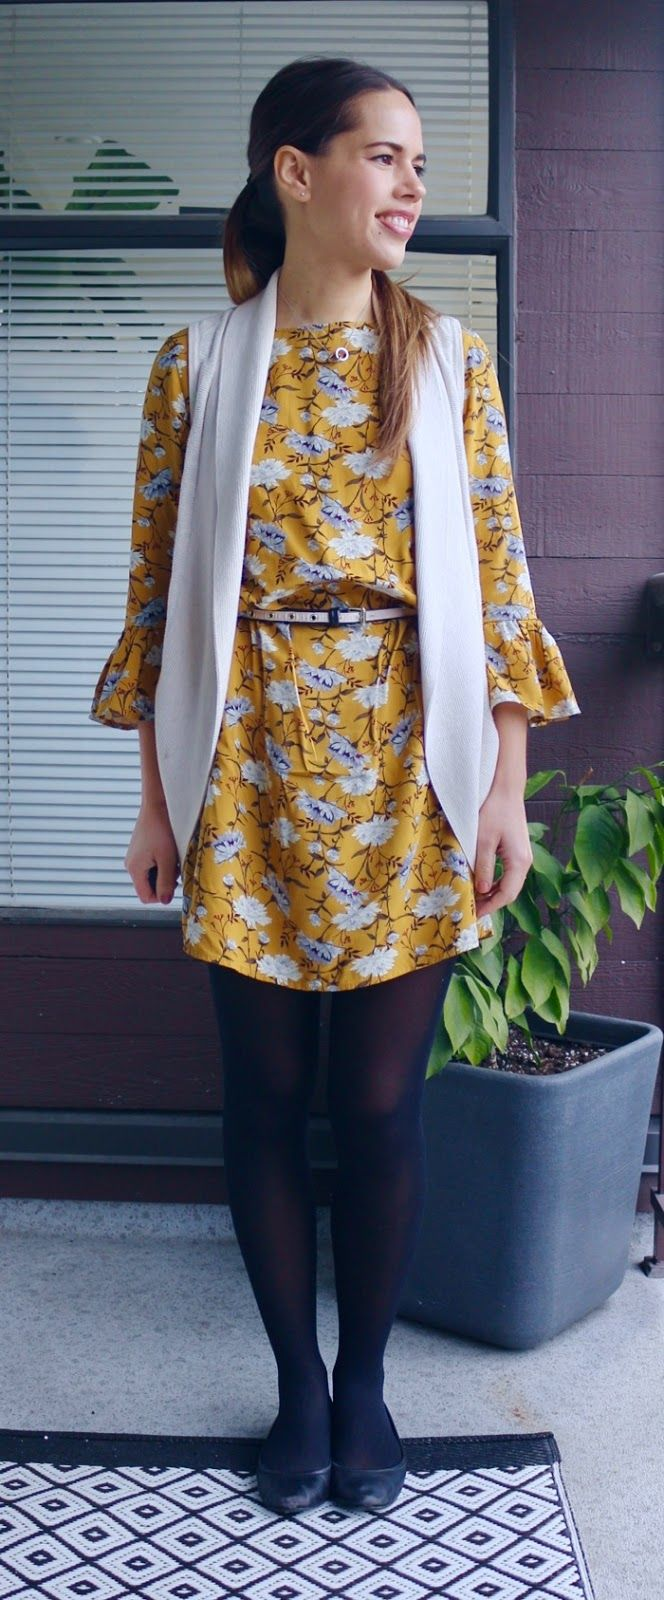 Jules in Flats - Yellow Floral Dress with Sweater Vest for Work